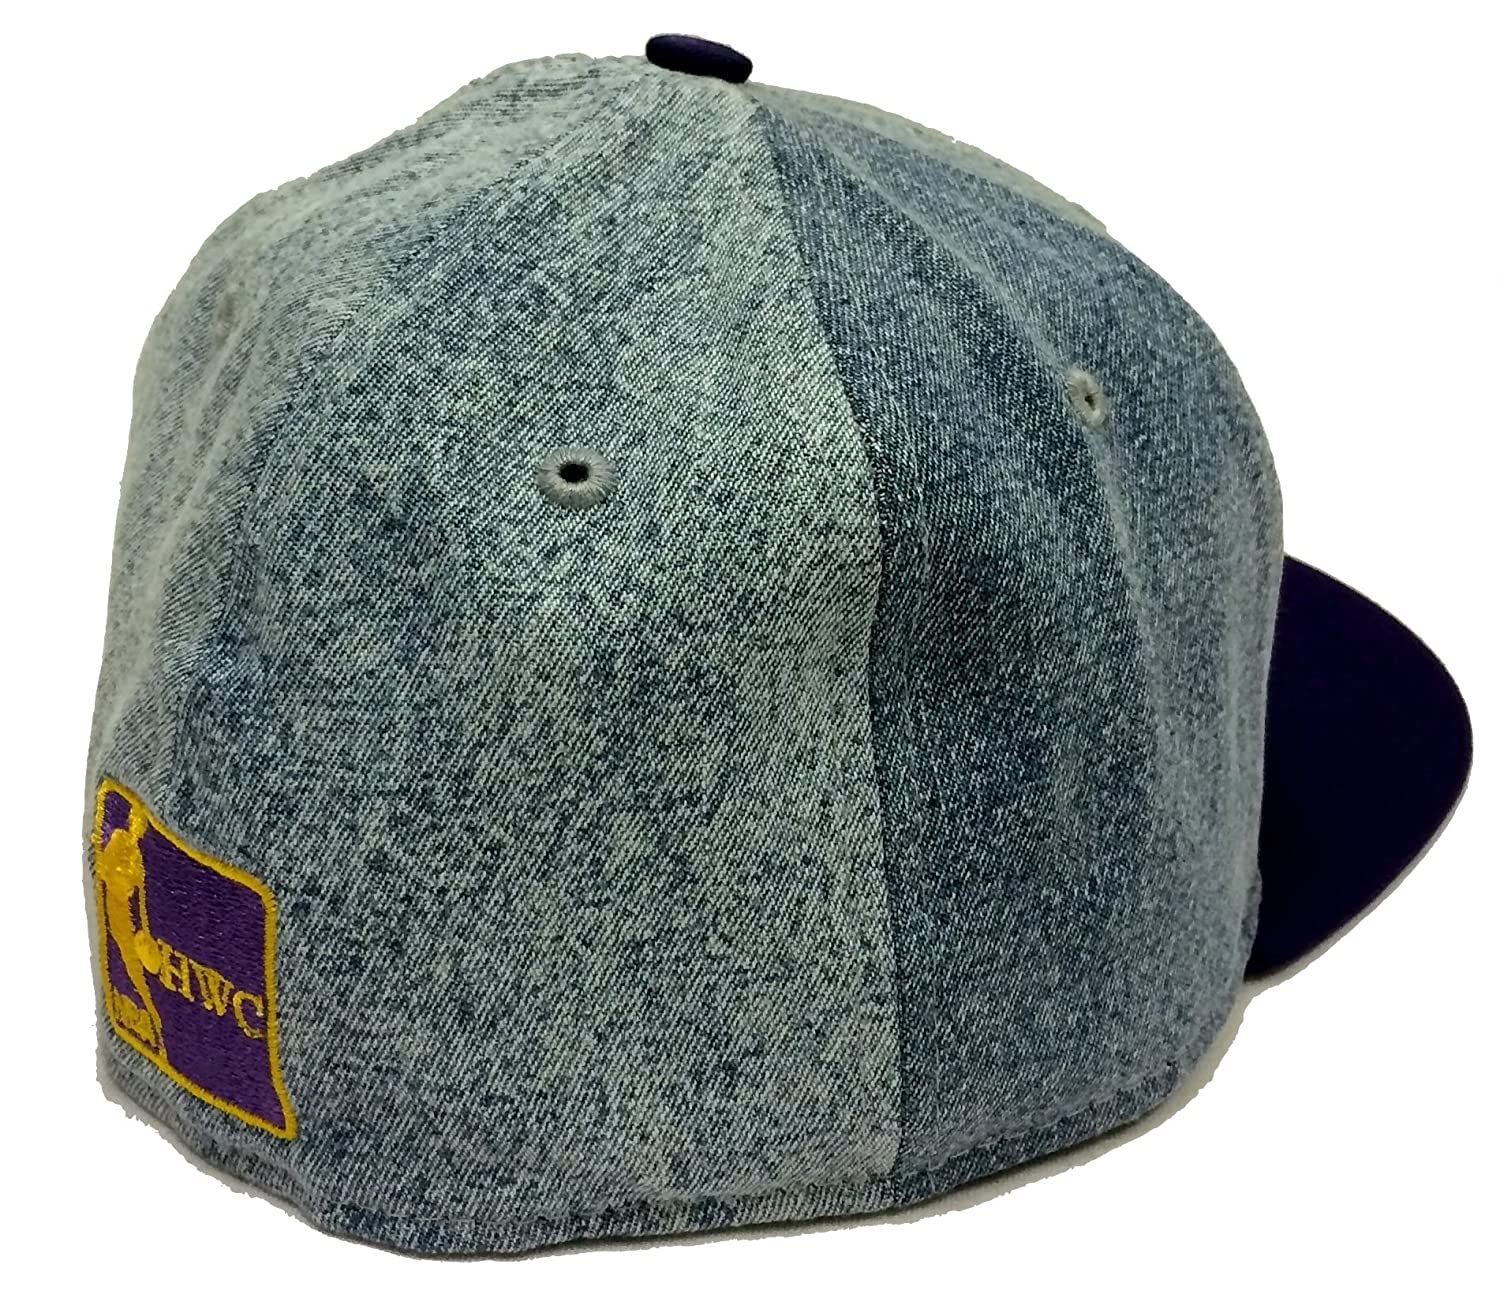 Amazon.com: New Era 59Fifty Denim Grunger Los Angeles Lakers Blue & Purple Fitted Cap: Clothing